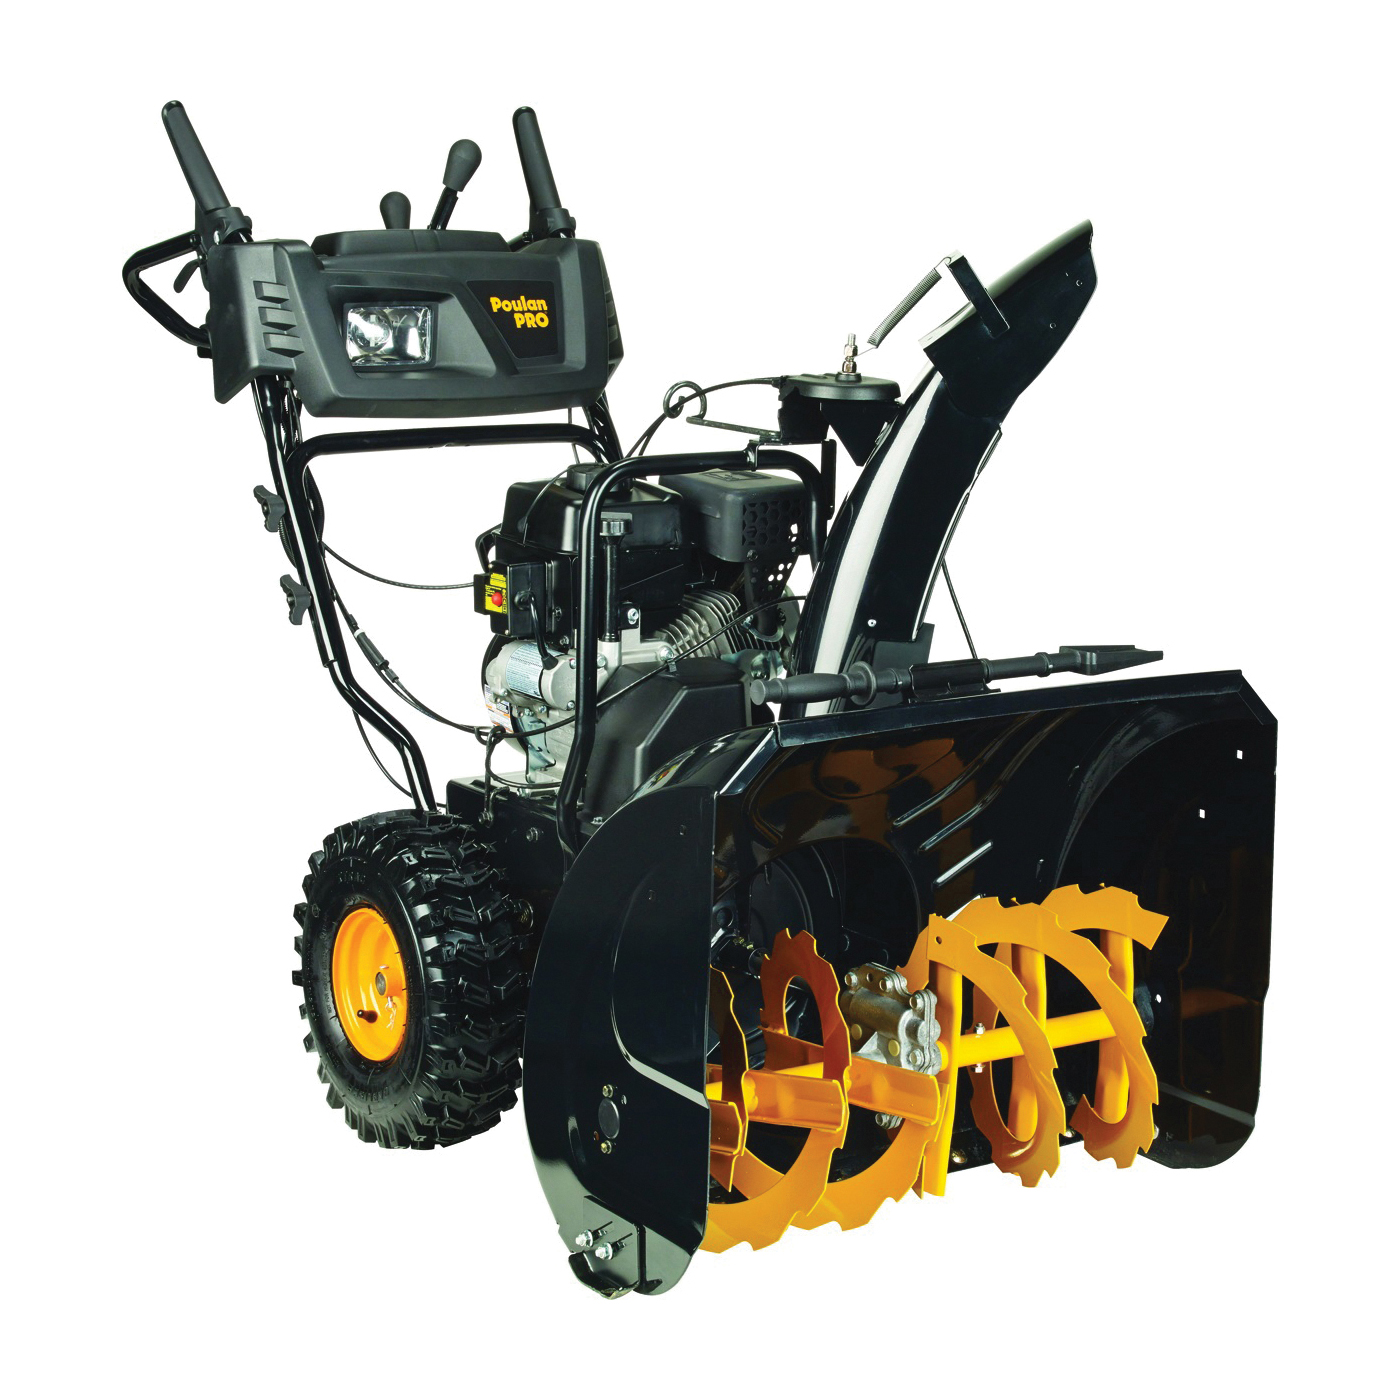 Picture of Poulan Pro PR271 Snow Thrower with Power Steering, 2 -Stage, 27 in W Cleaning